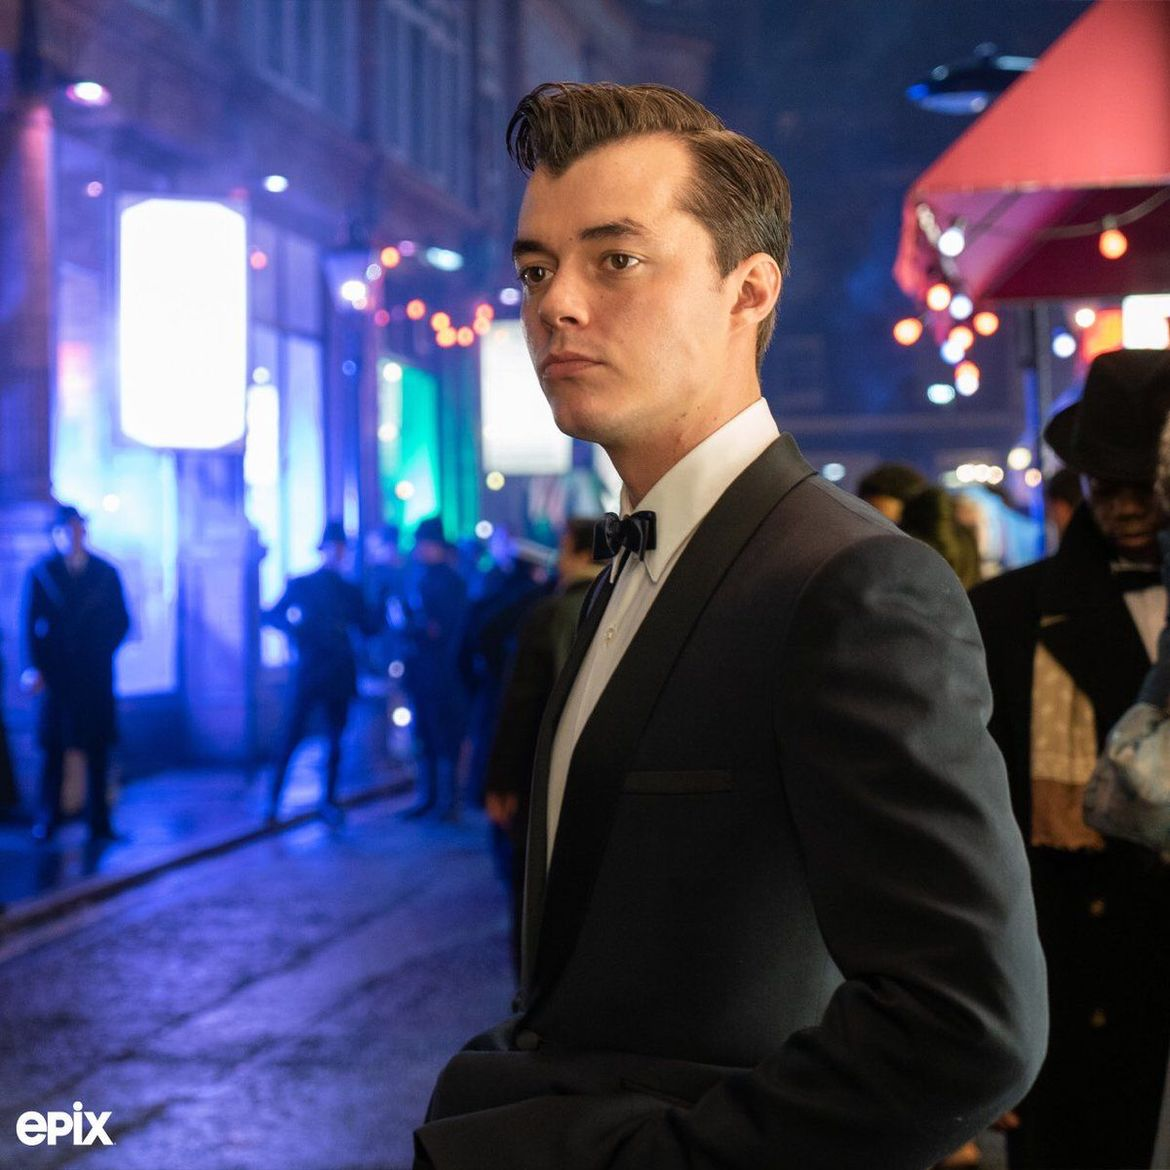 Jack Bannon as Alfred Pennyworth